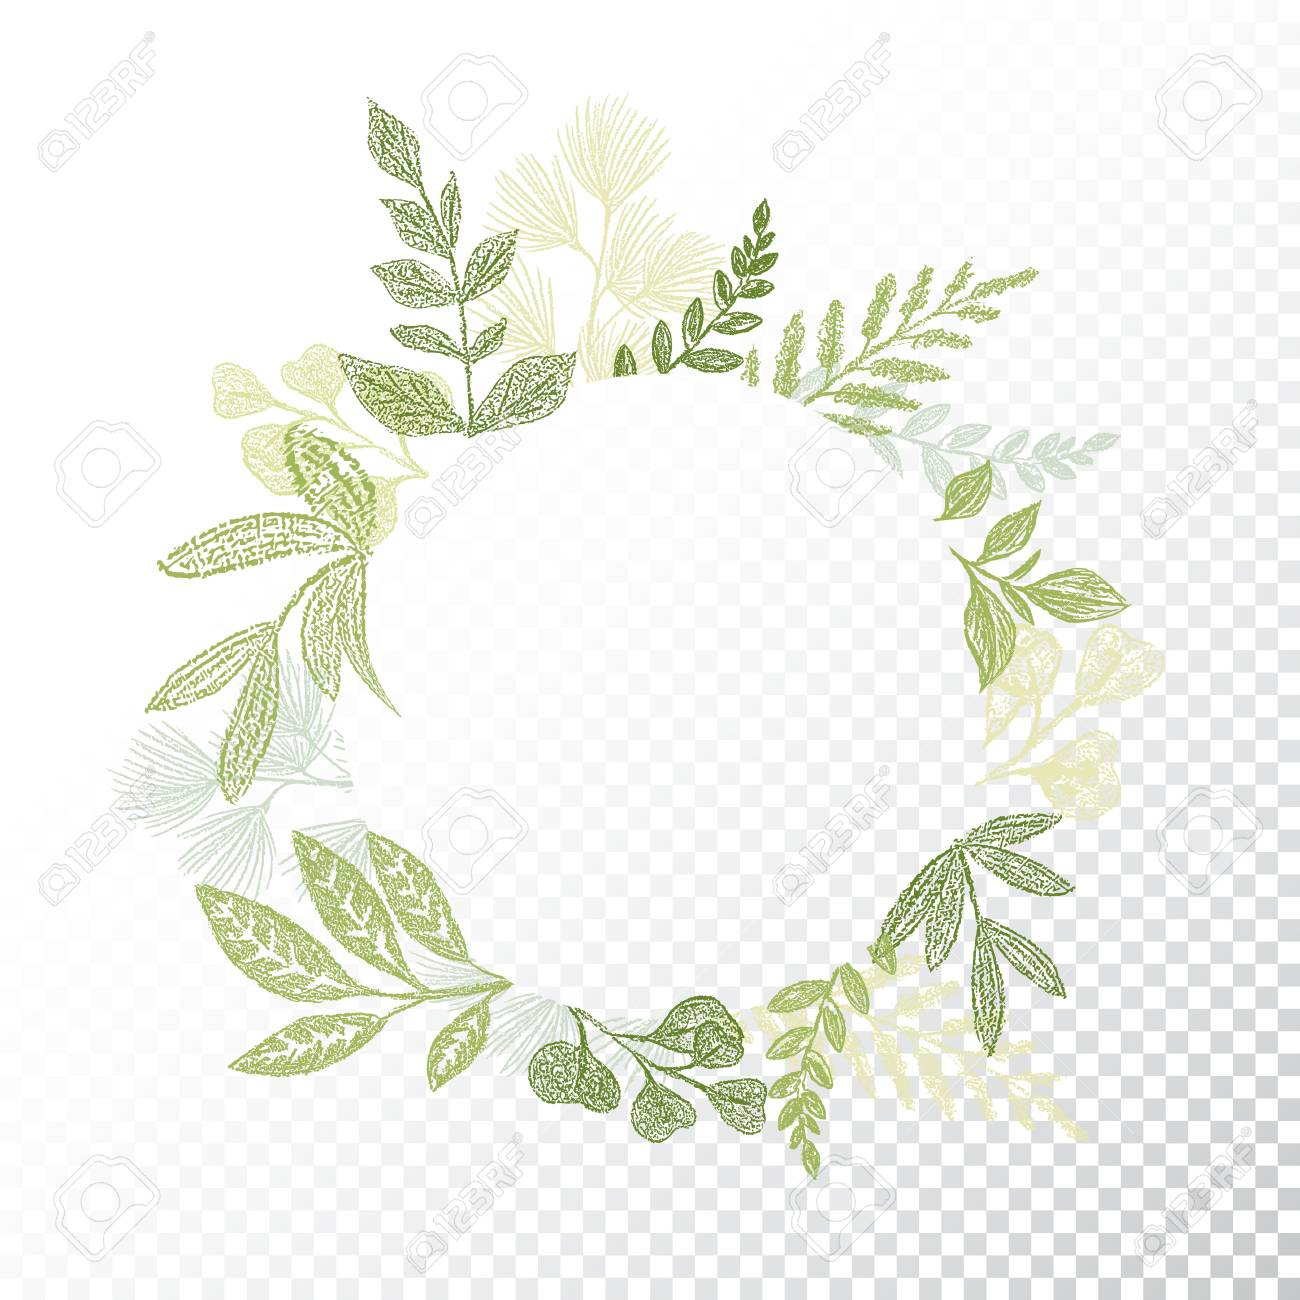 Circle Floral Frame With Hand Drawn Branches And Leaves Decoration Round Green Botanical Border For